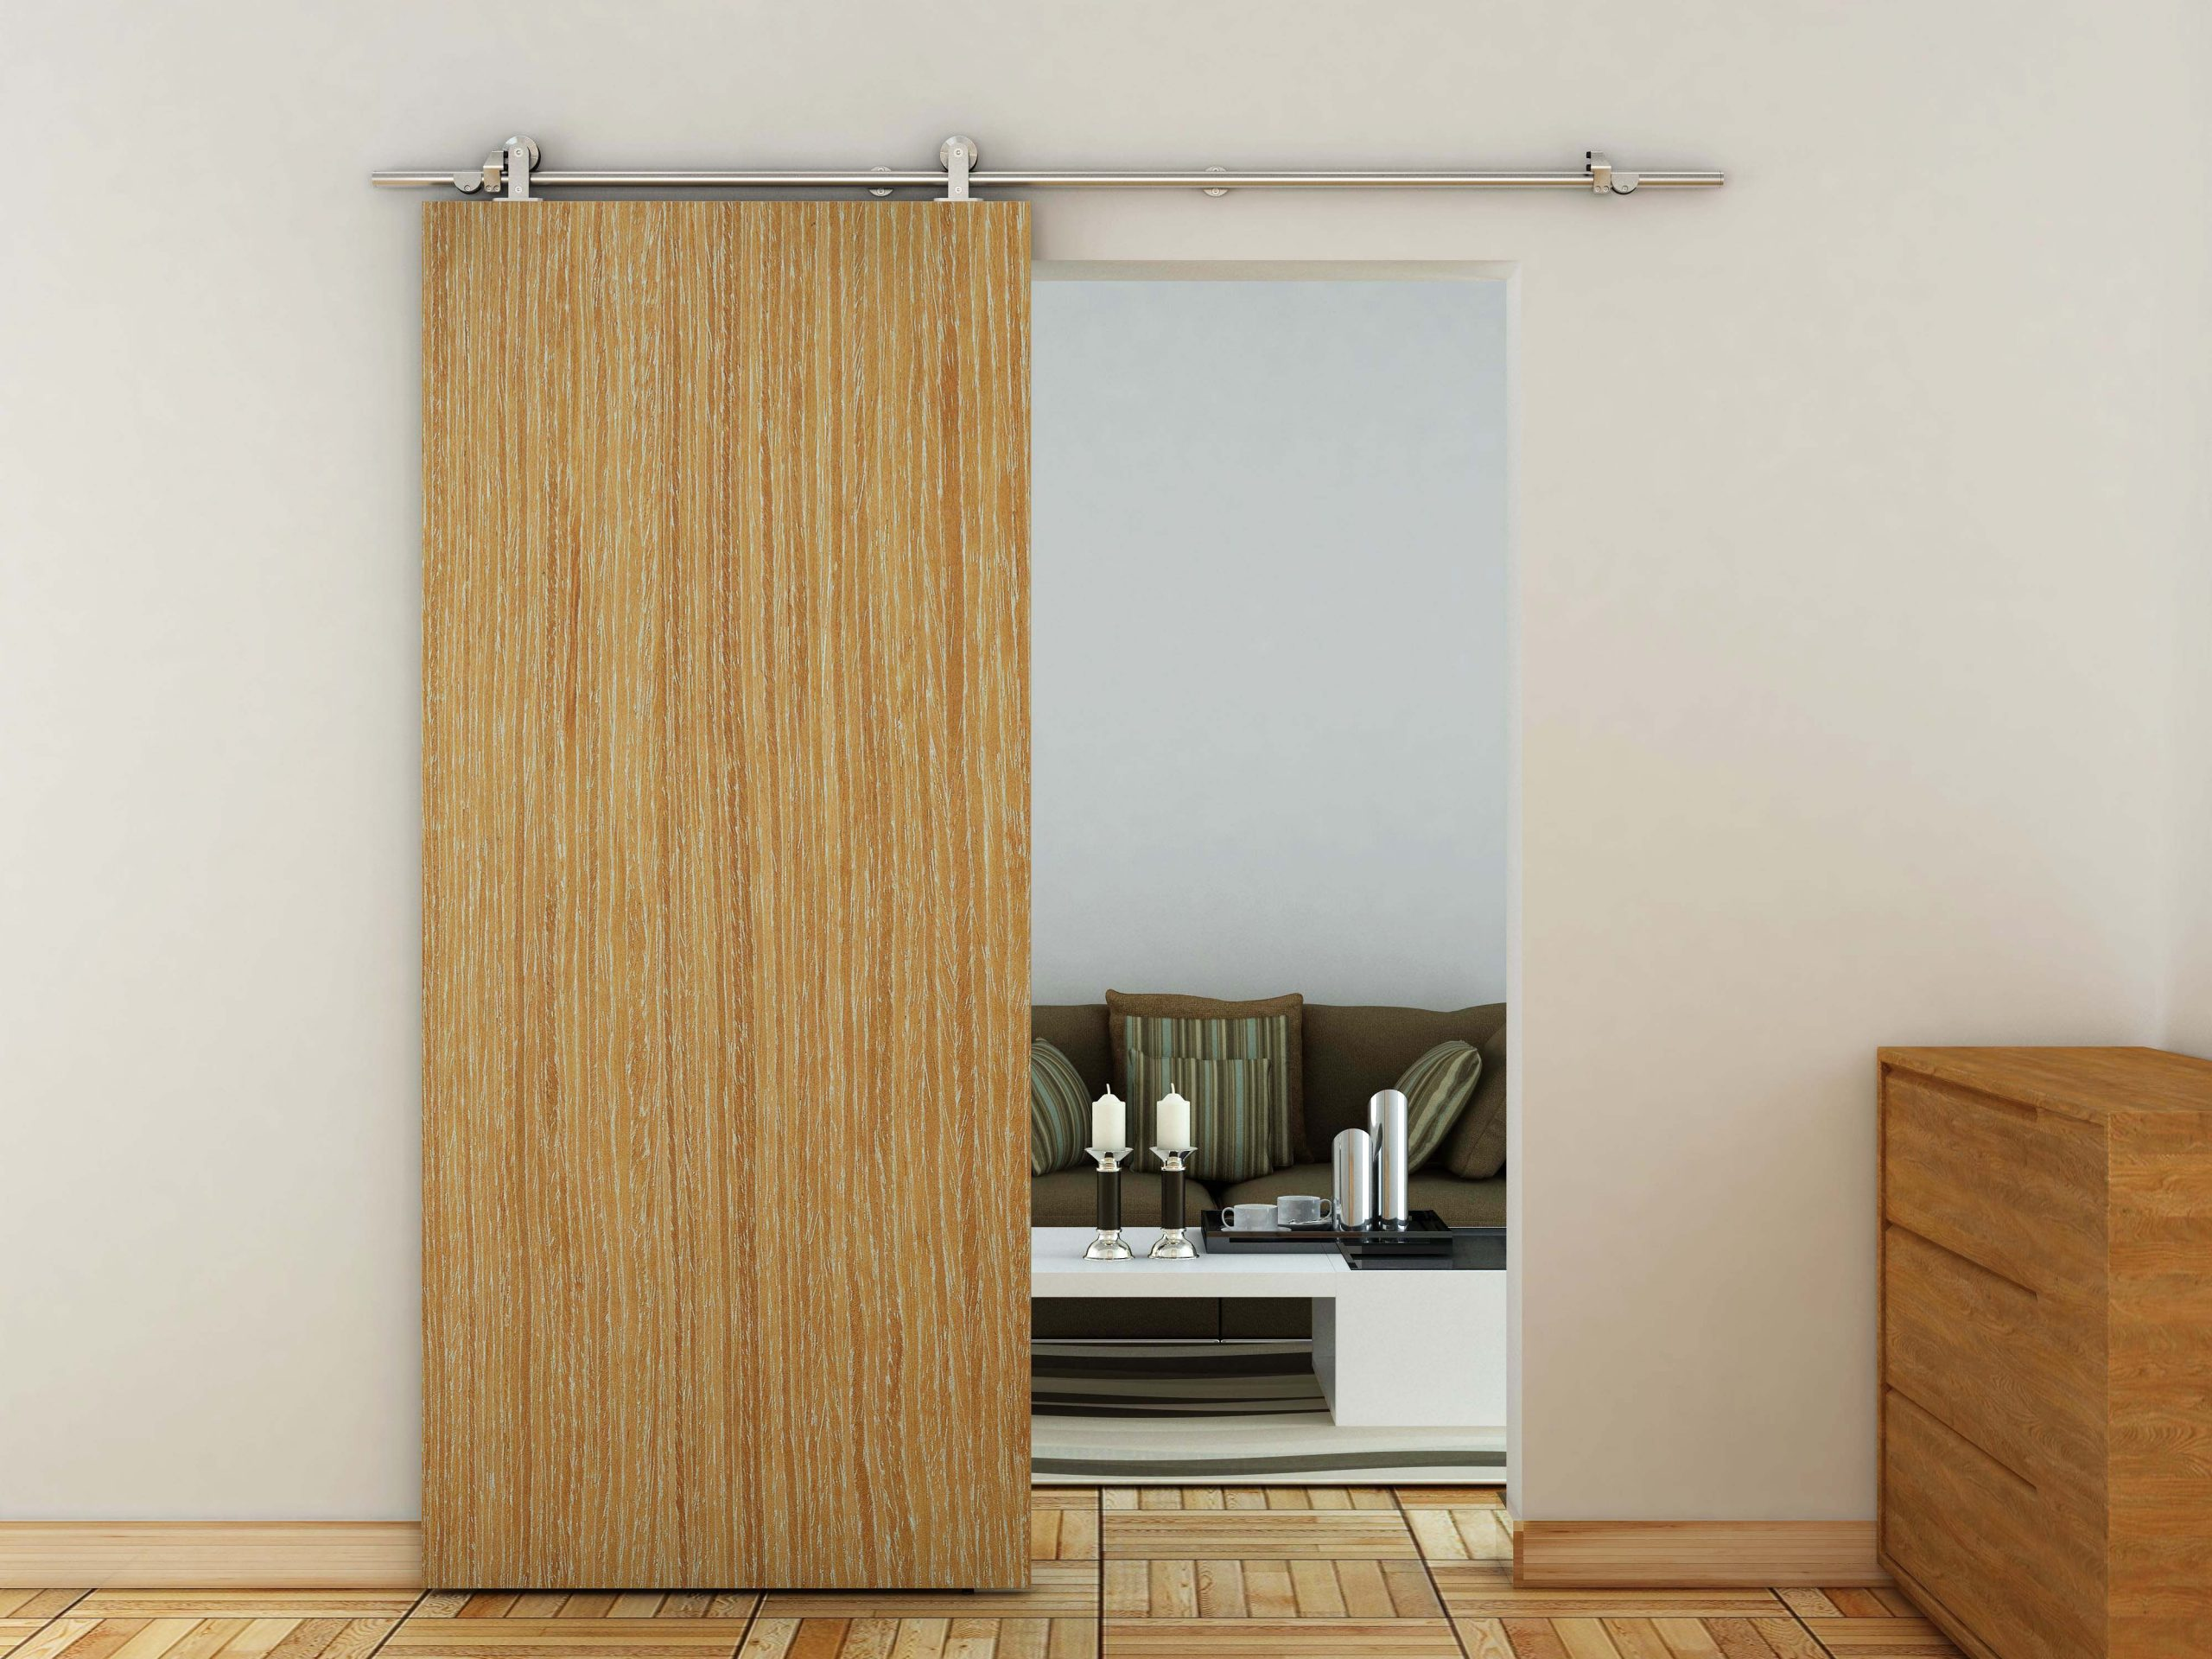 Wooden Sliding Door Kit. Single